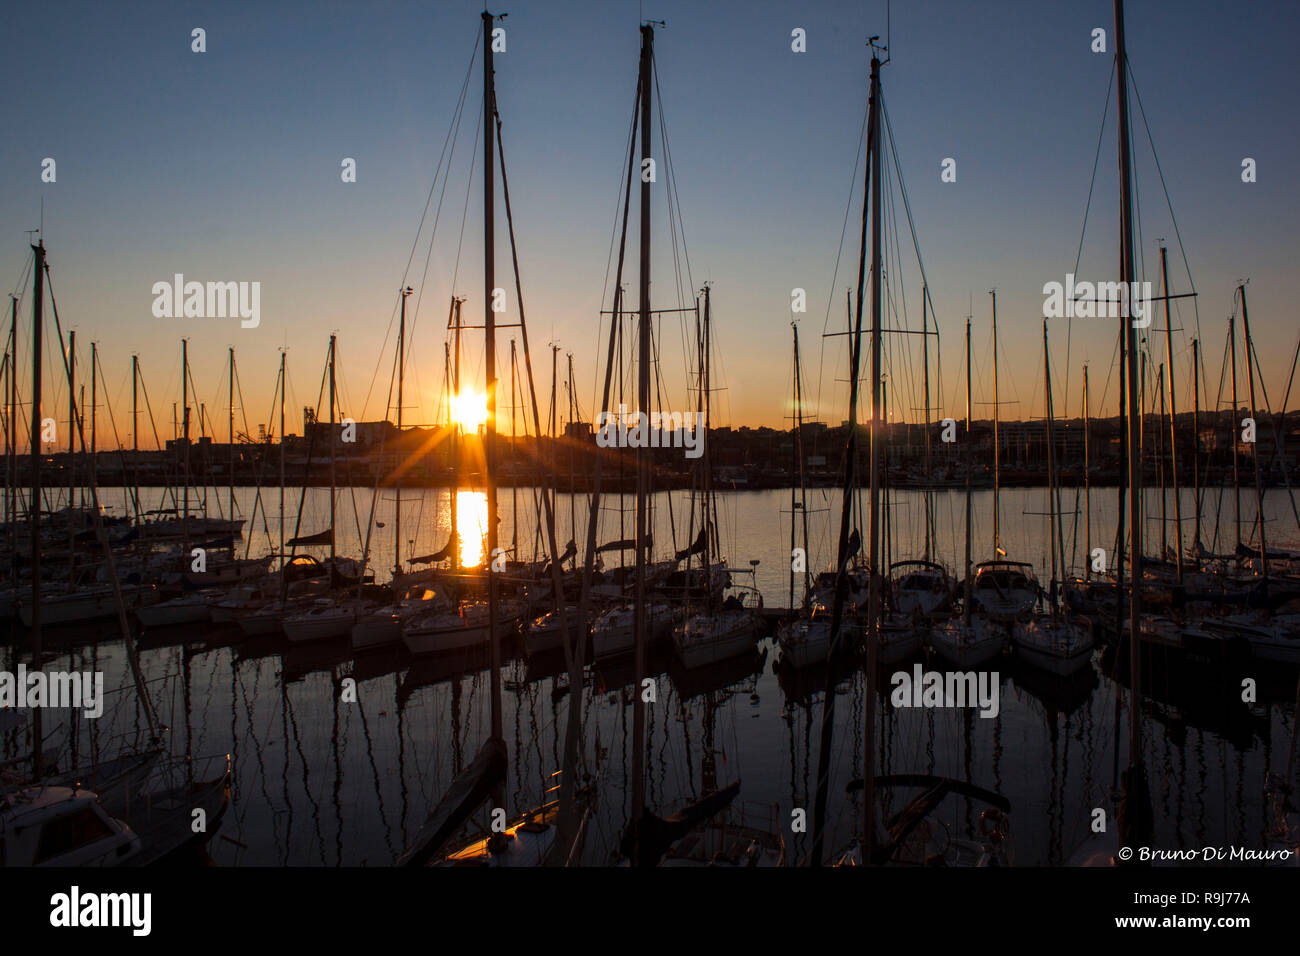 Sunset in the port of Catania - Stock Image